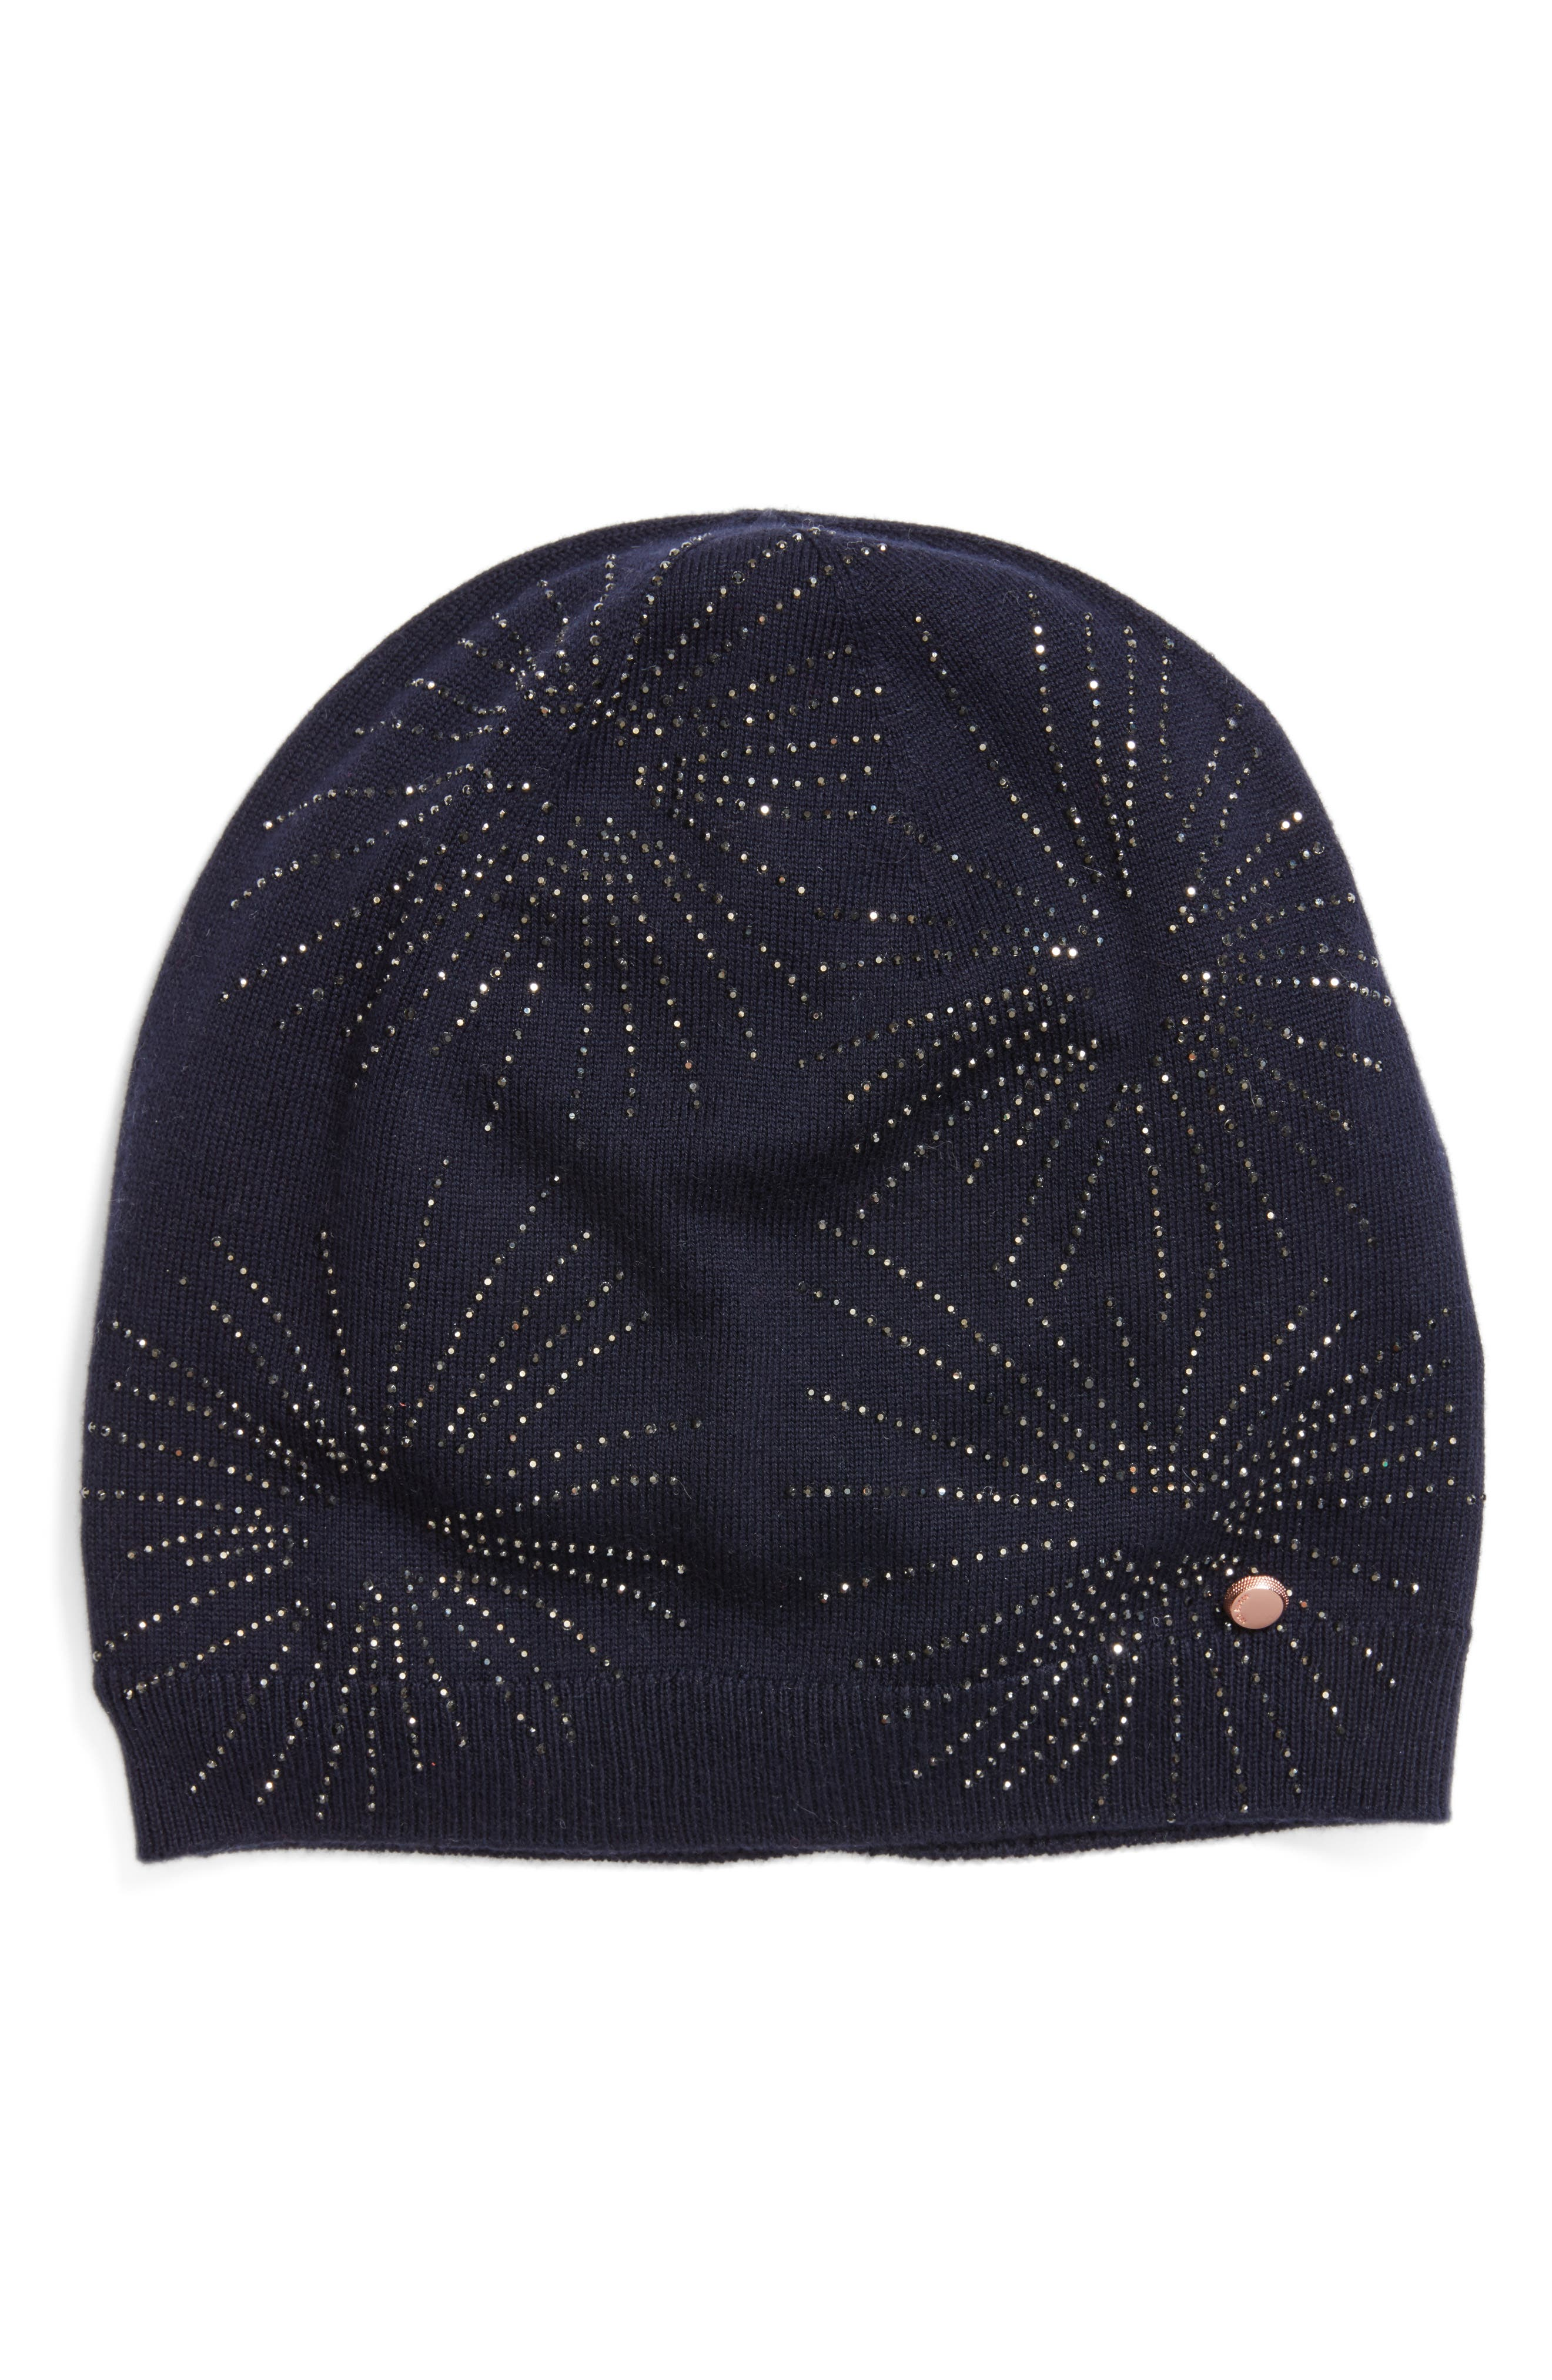 Ted Baker London Stardust Embellished Knit Beanie